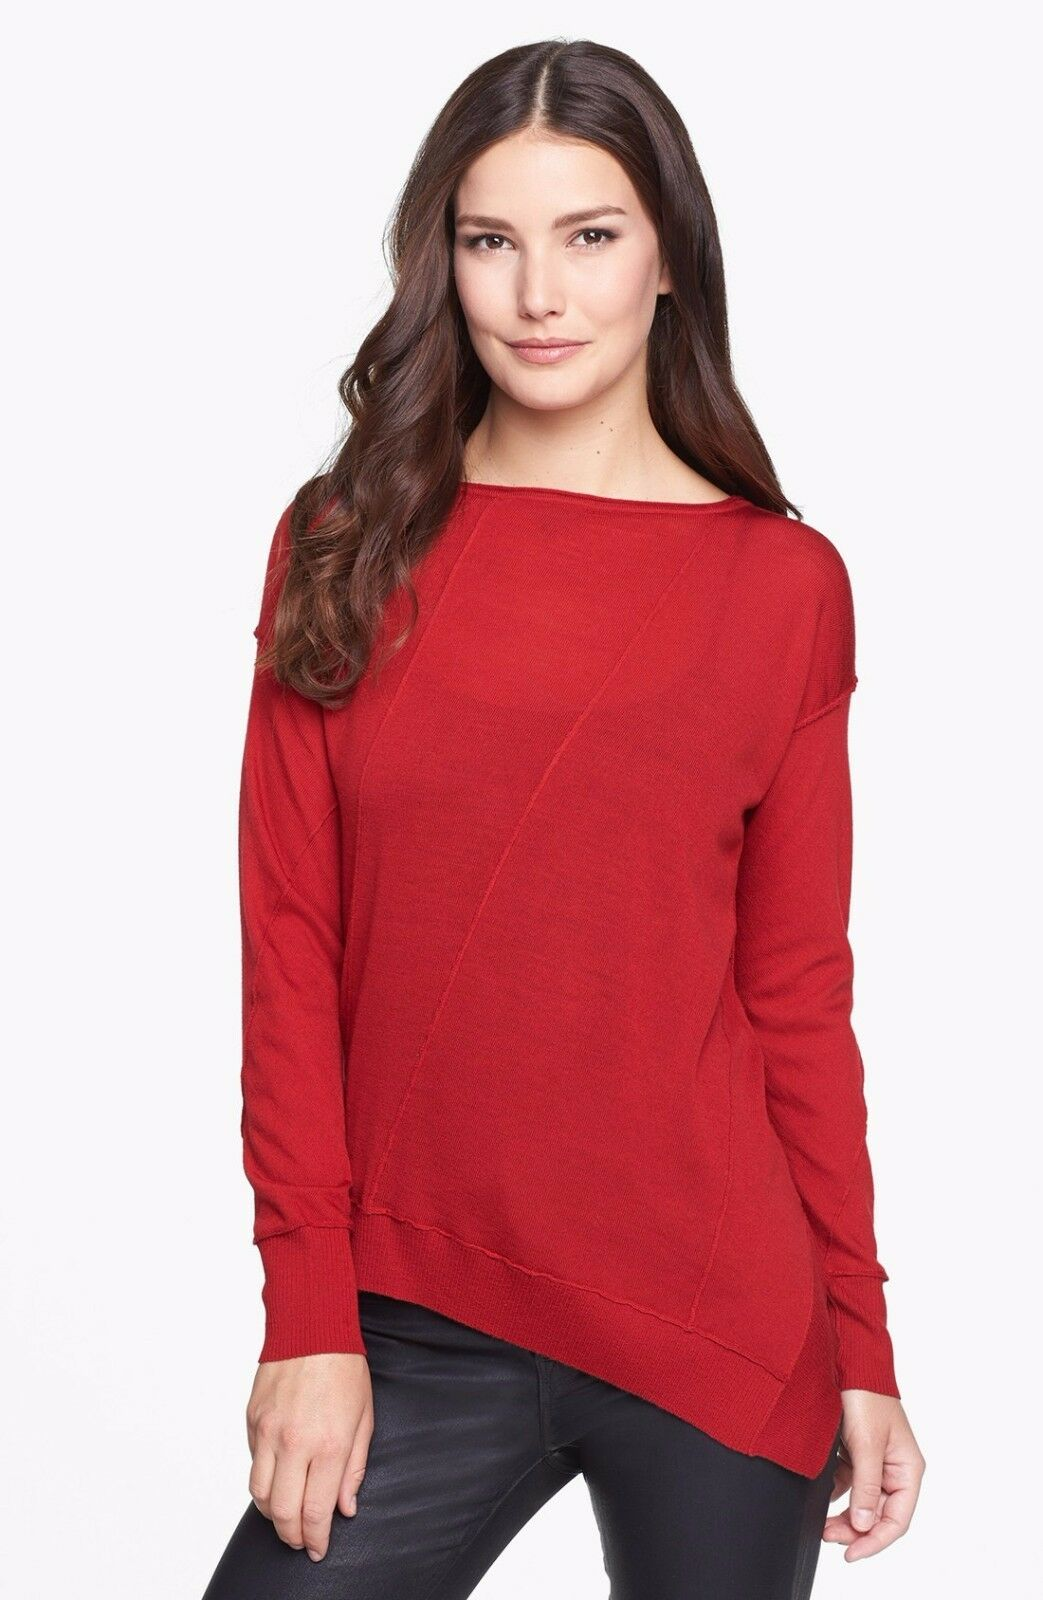 NWT Eileen Fisher Bateau Neck Sweater Top Merino Jersey Lacquer rot  – XS